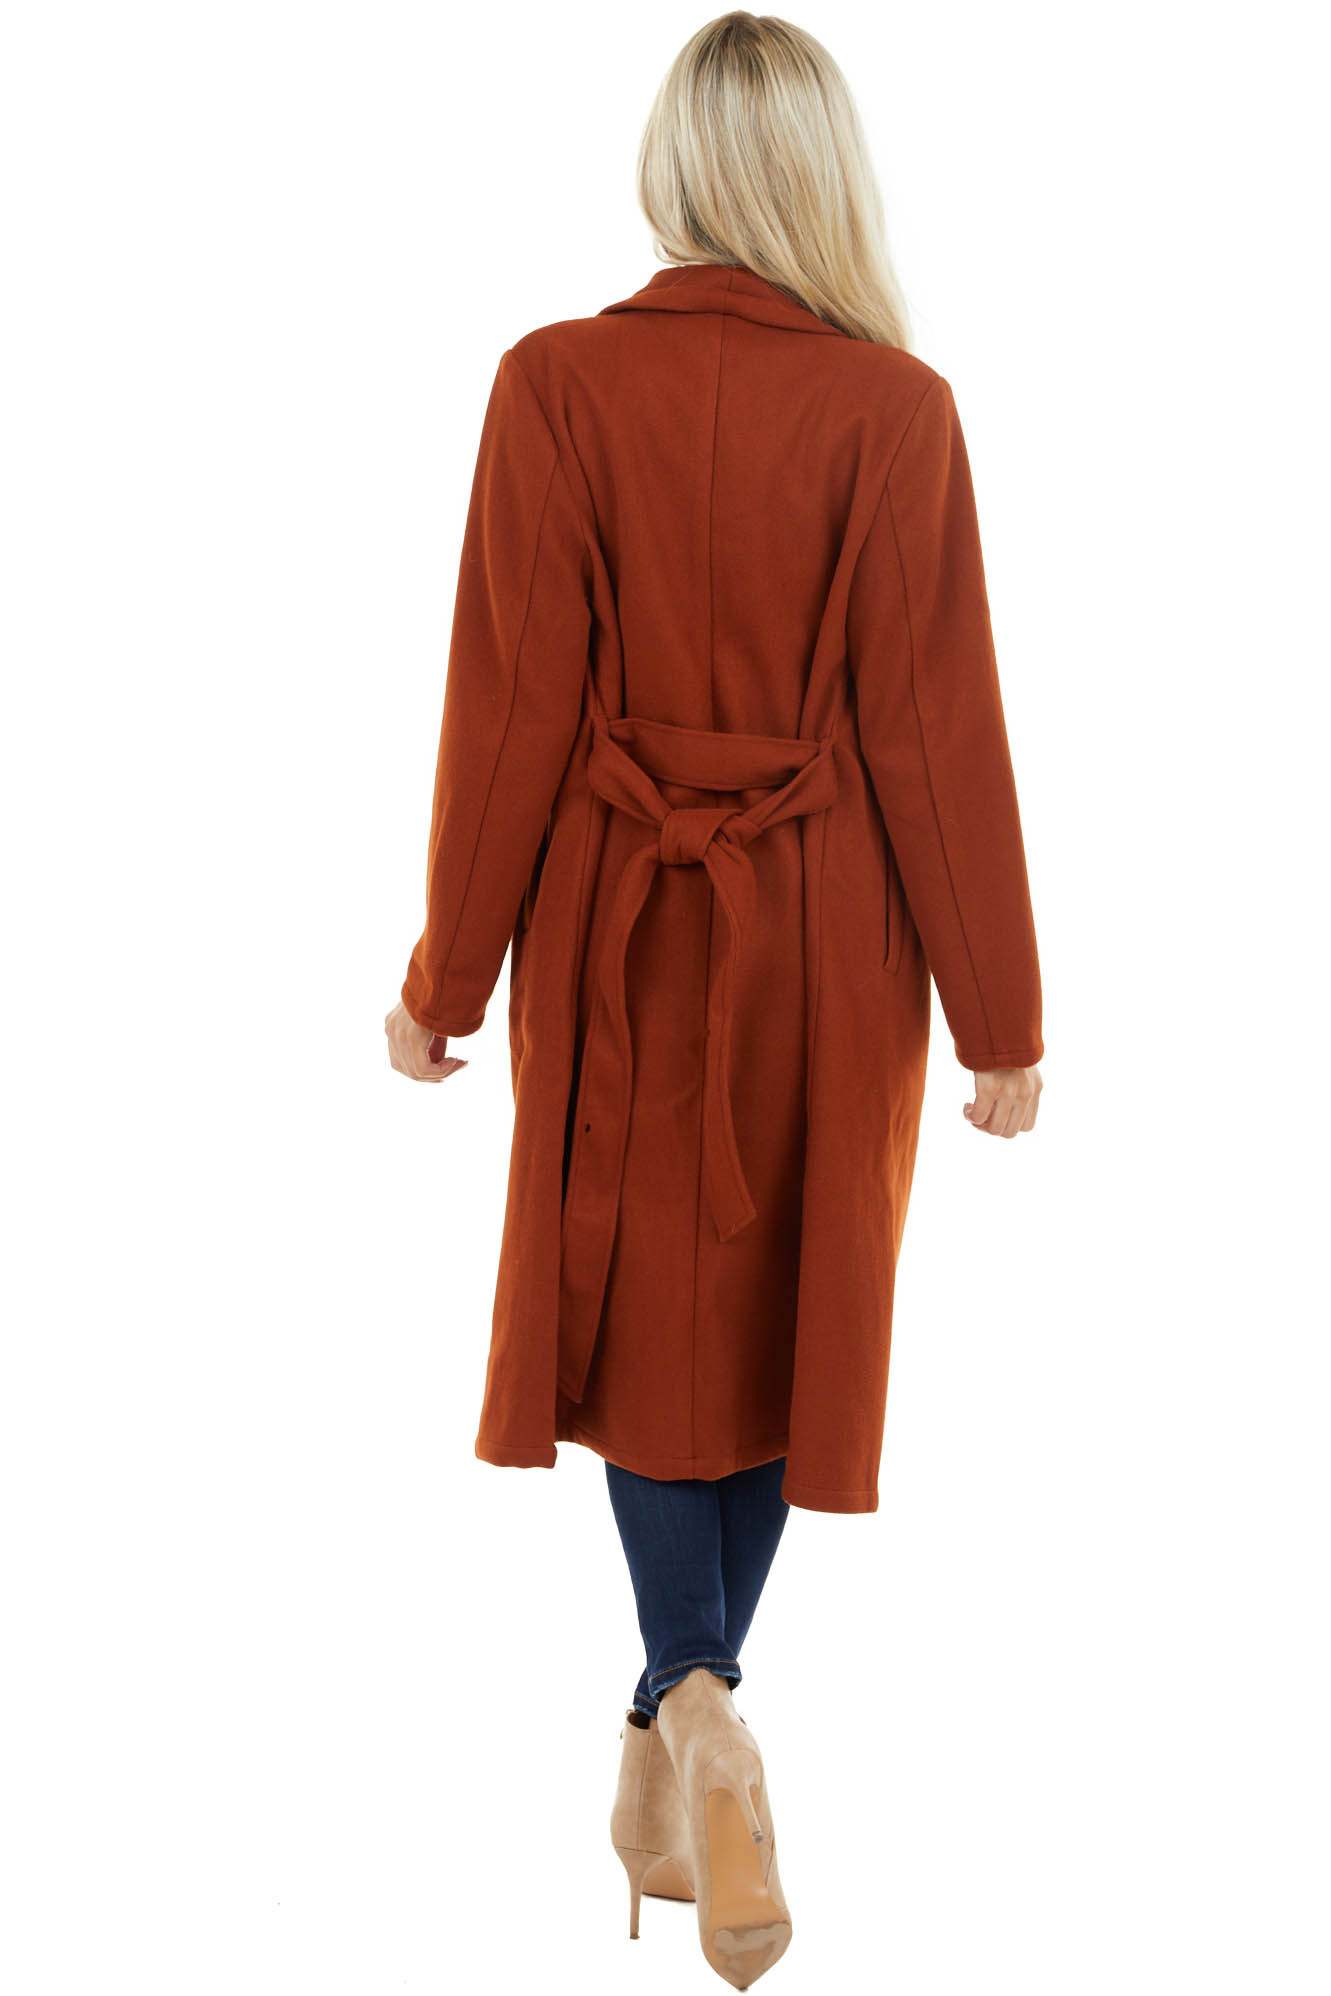 Brick Red Heavy Knit Trench Coat with Waist Tie Detail